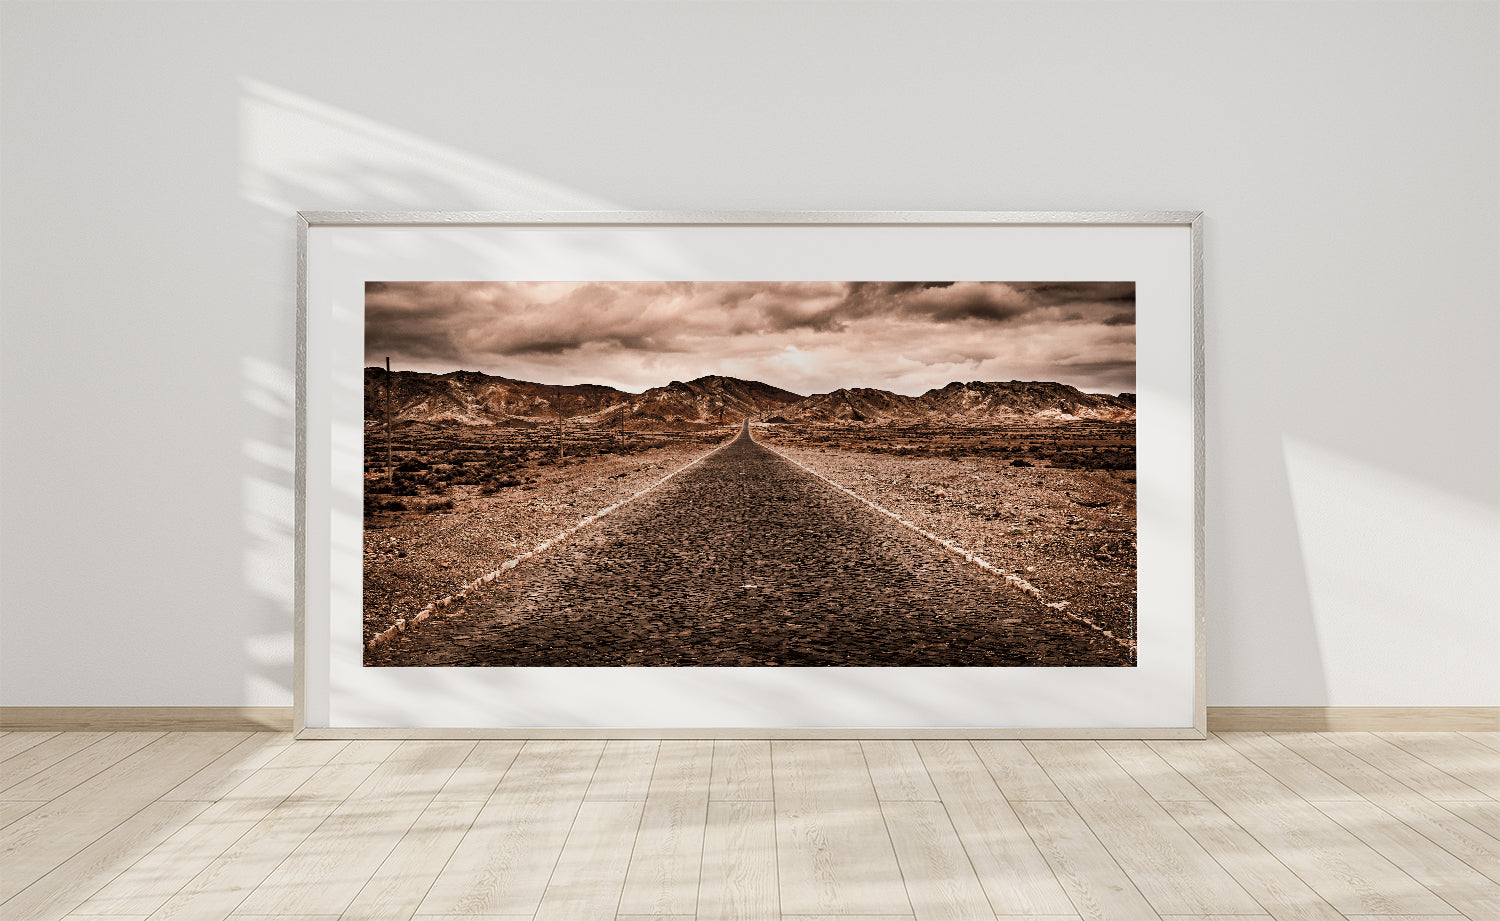 Print of a road in the Viana desert of Boa Vista, Cape Verde